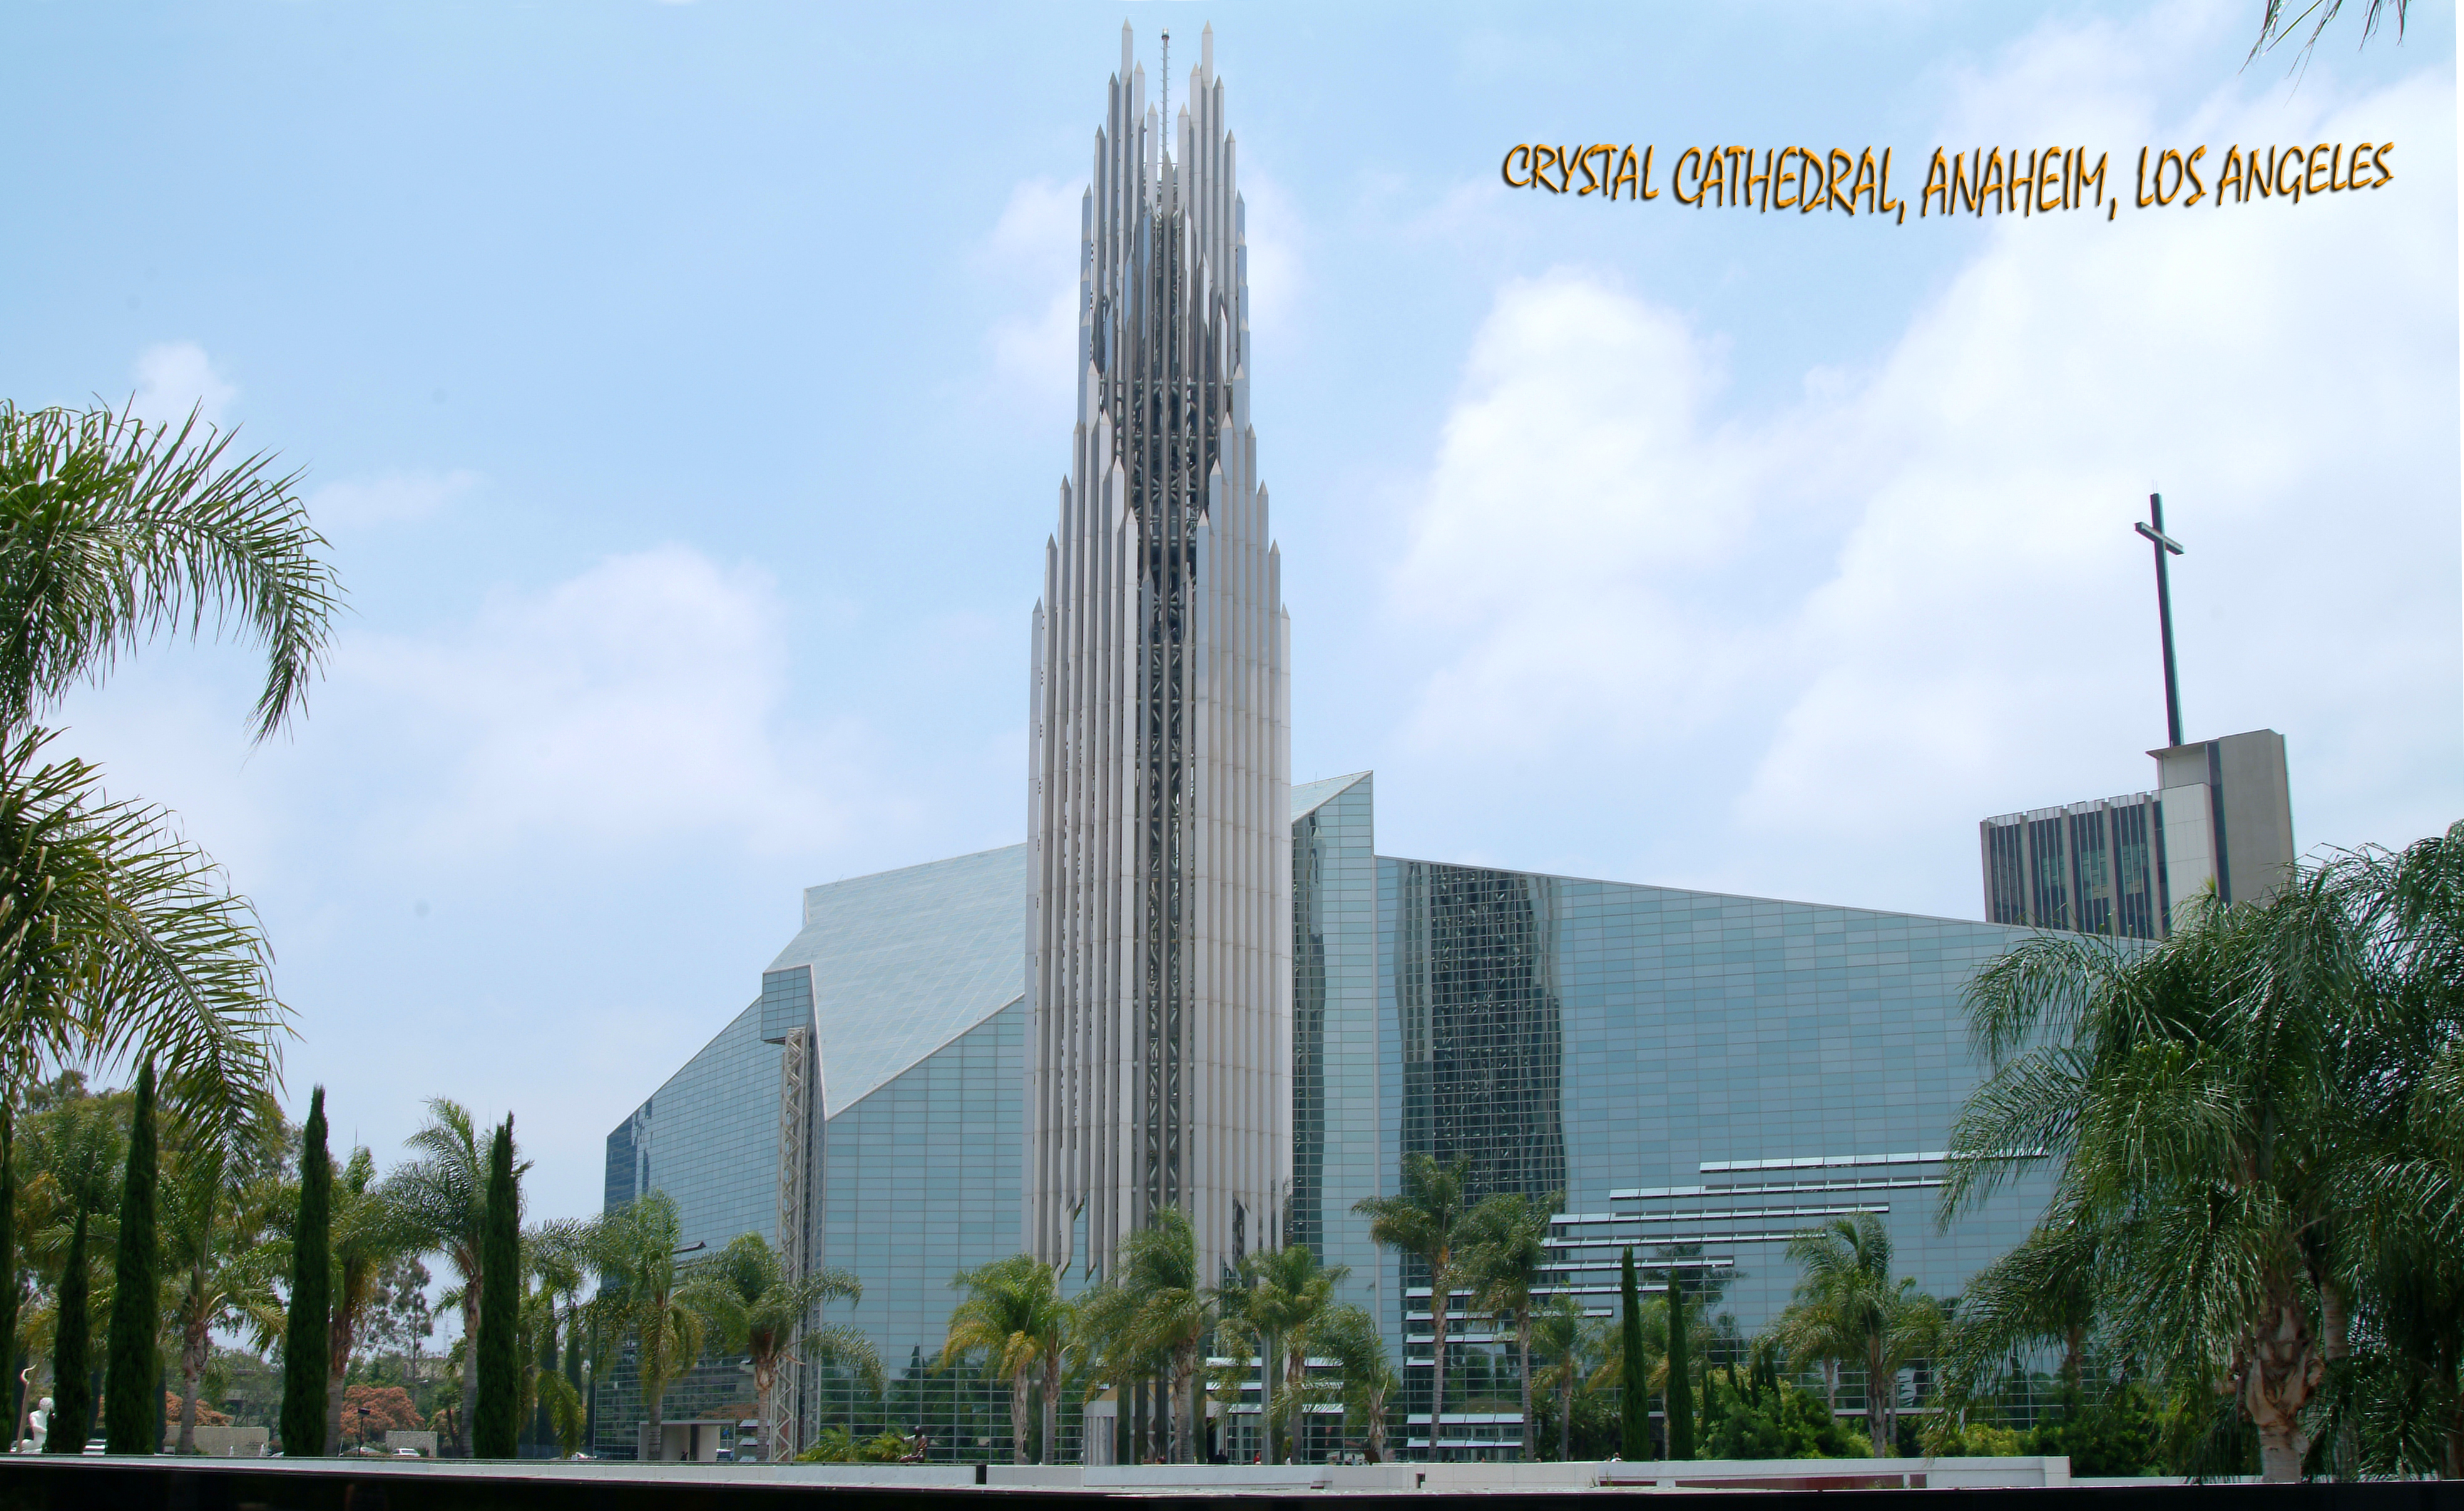 CRYSTAL CATHEDRAL, LOS ANGELES